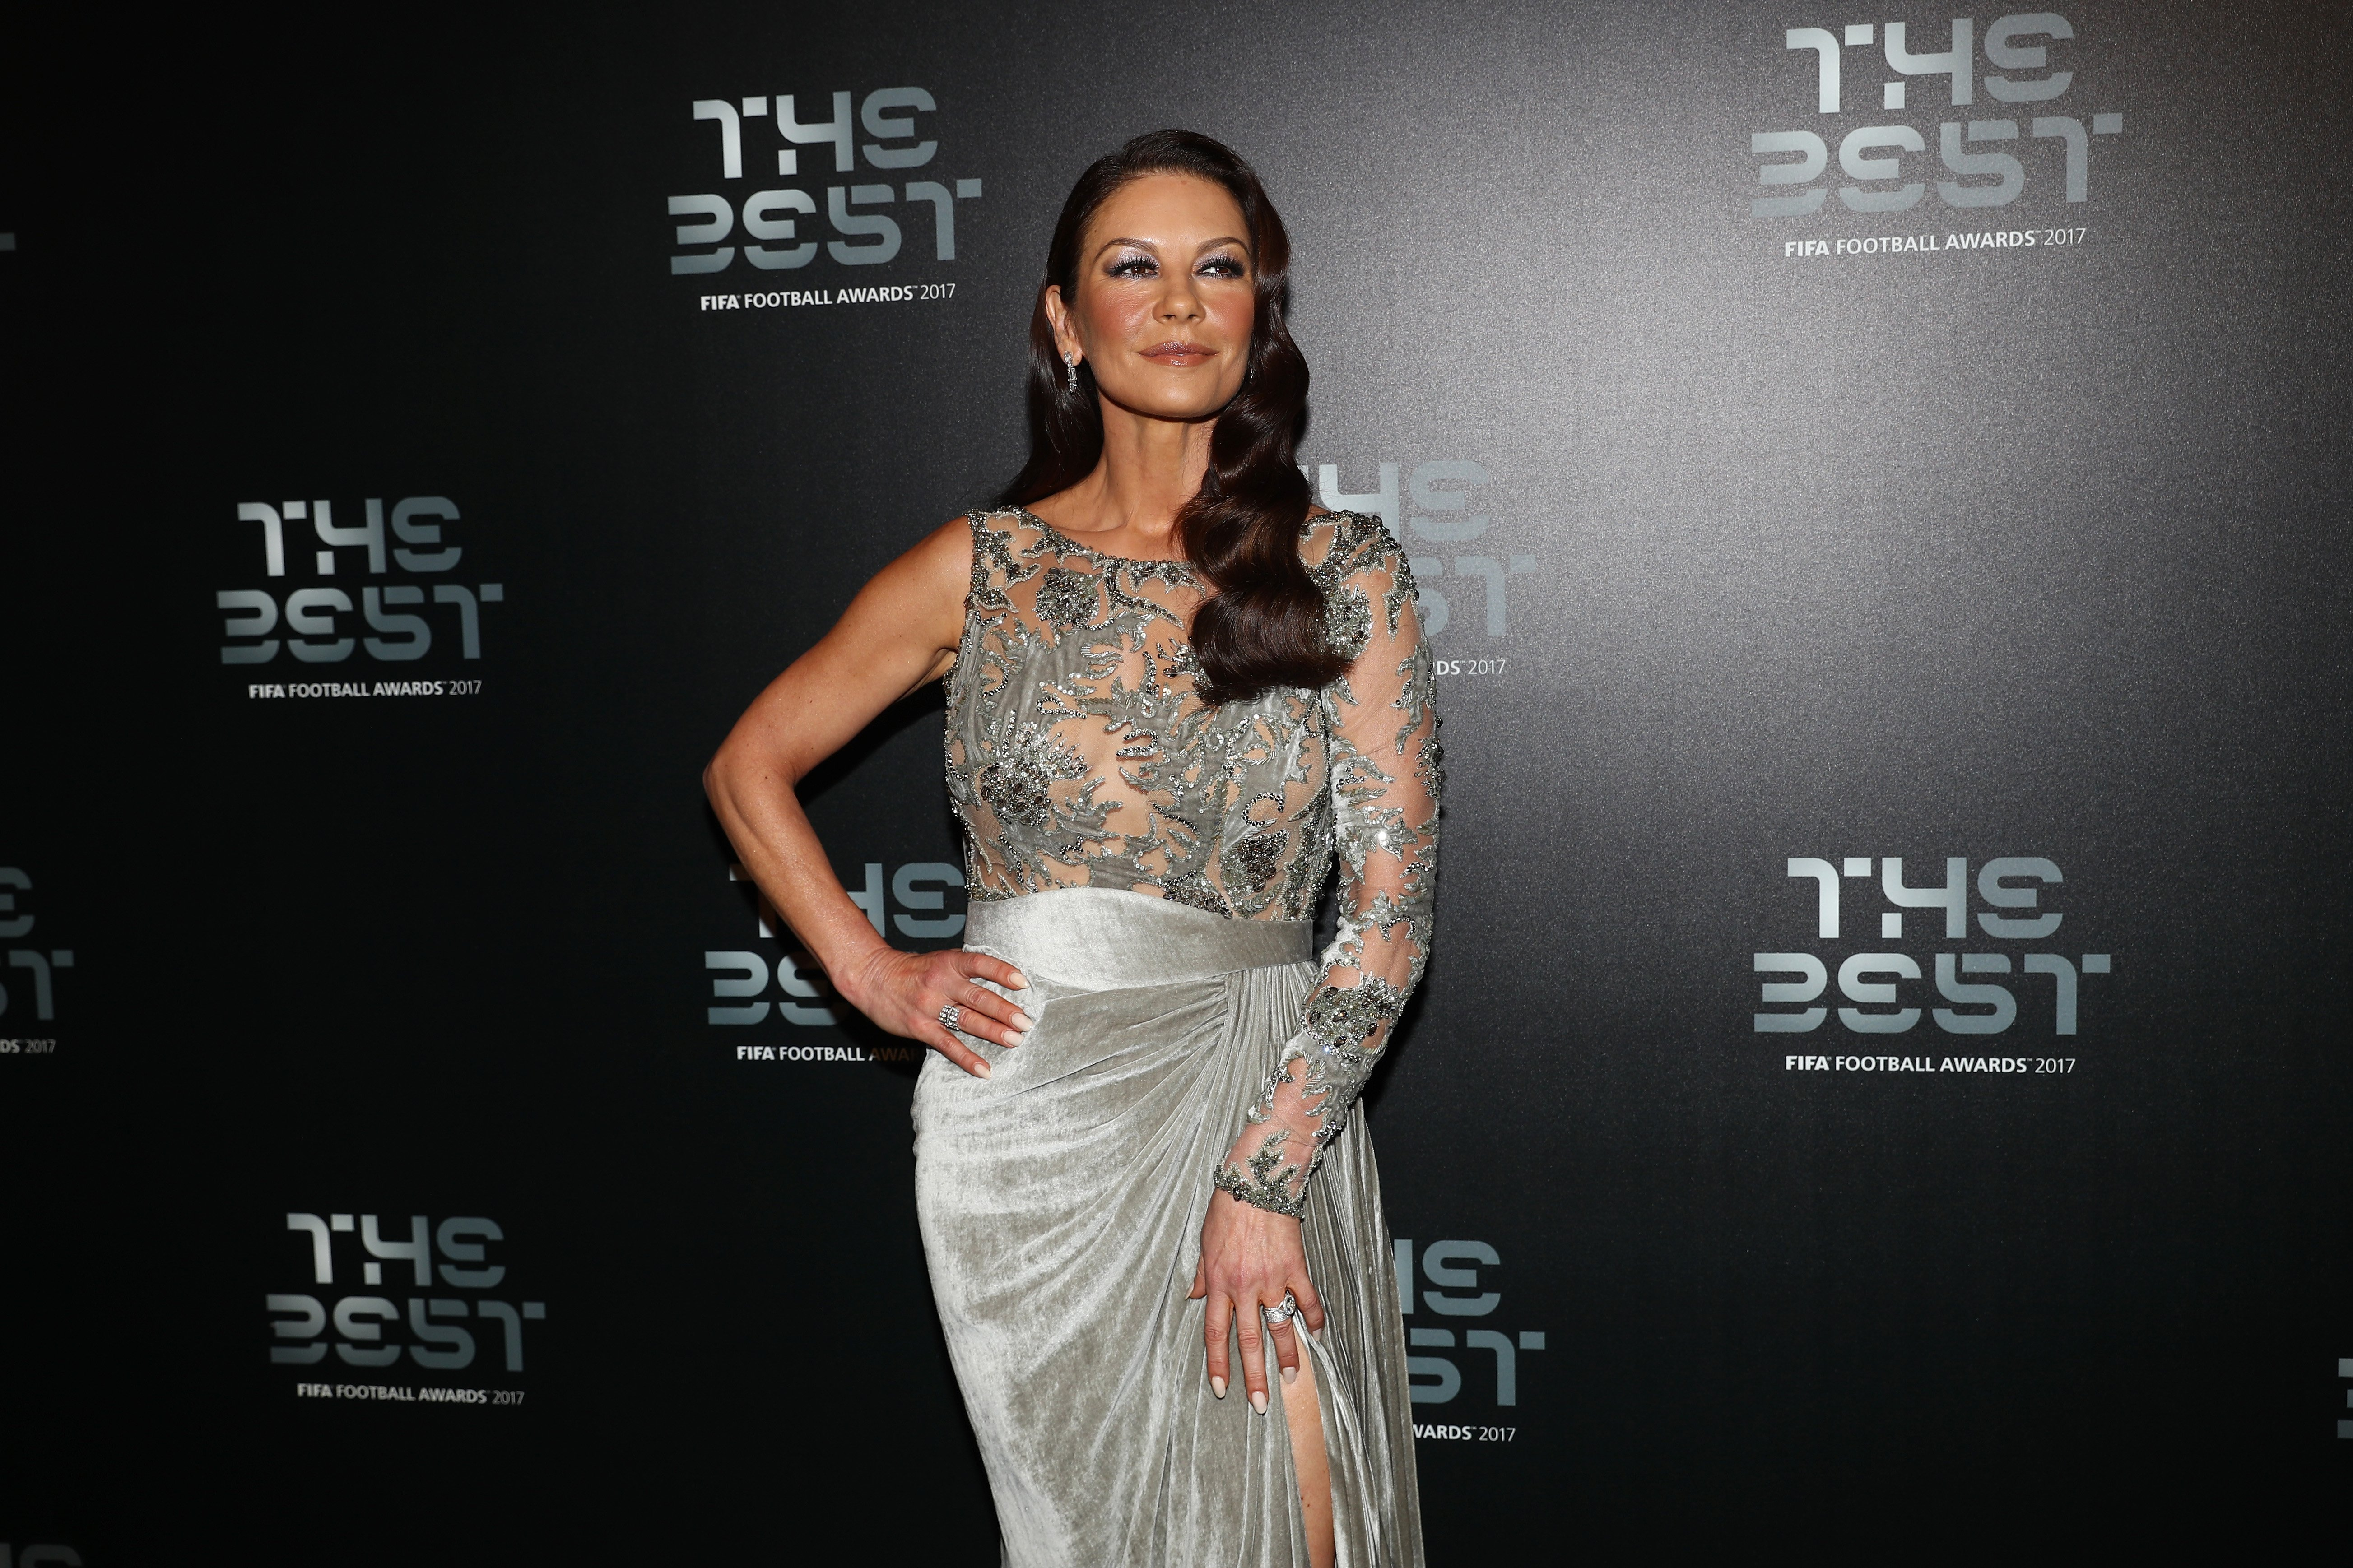 Image Credits: Getty Images / Michael Steele | Catherine Zeta Jones arrives for The Best FIFA Football Awards - Green Carpet Arrivals on October 23, 2017 in London, England.